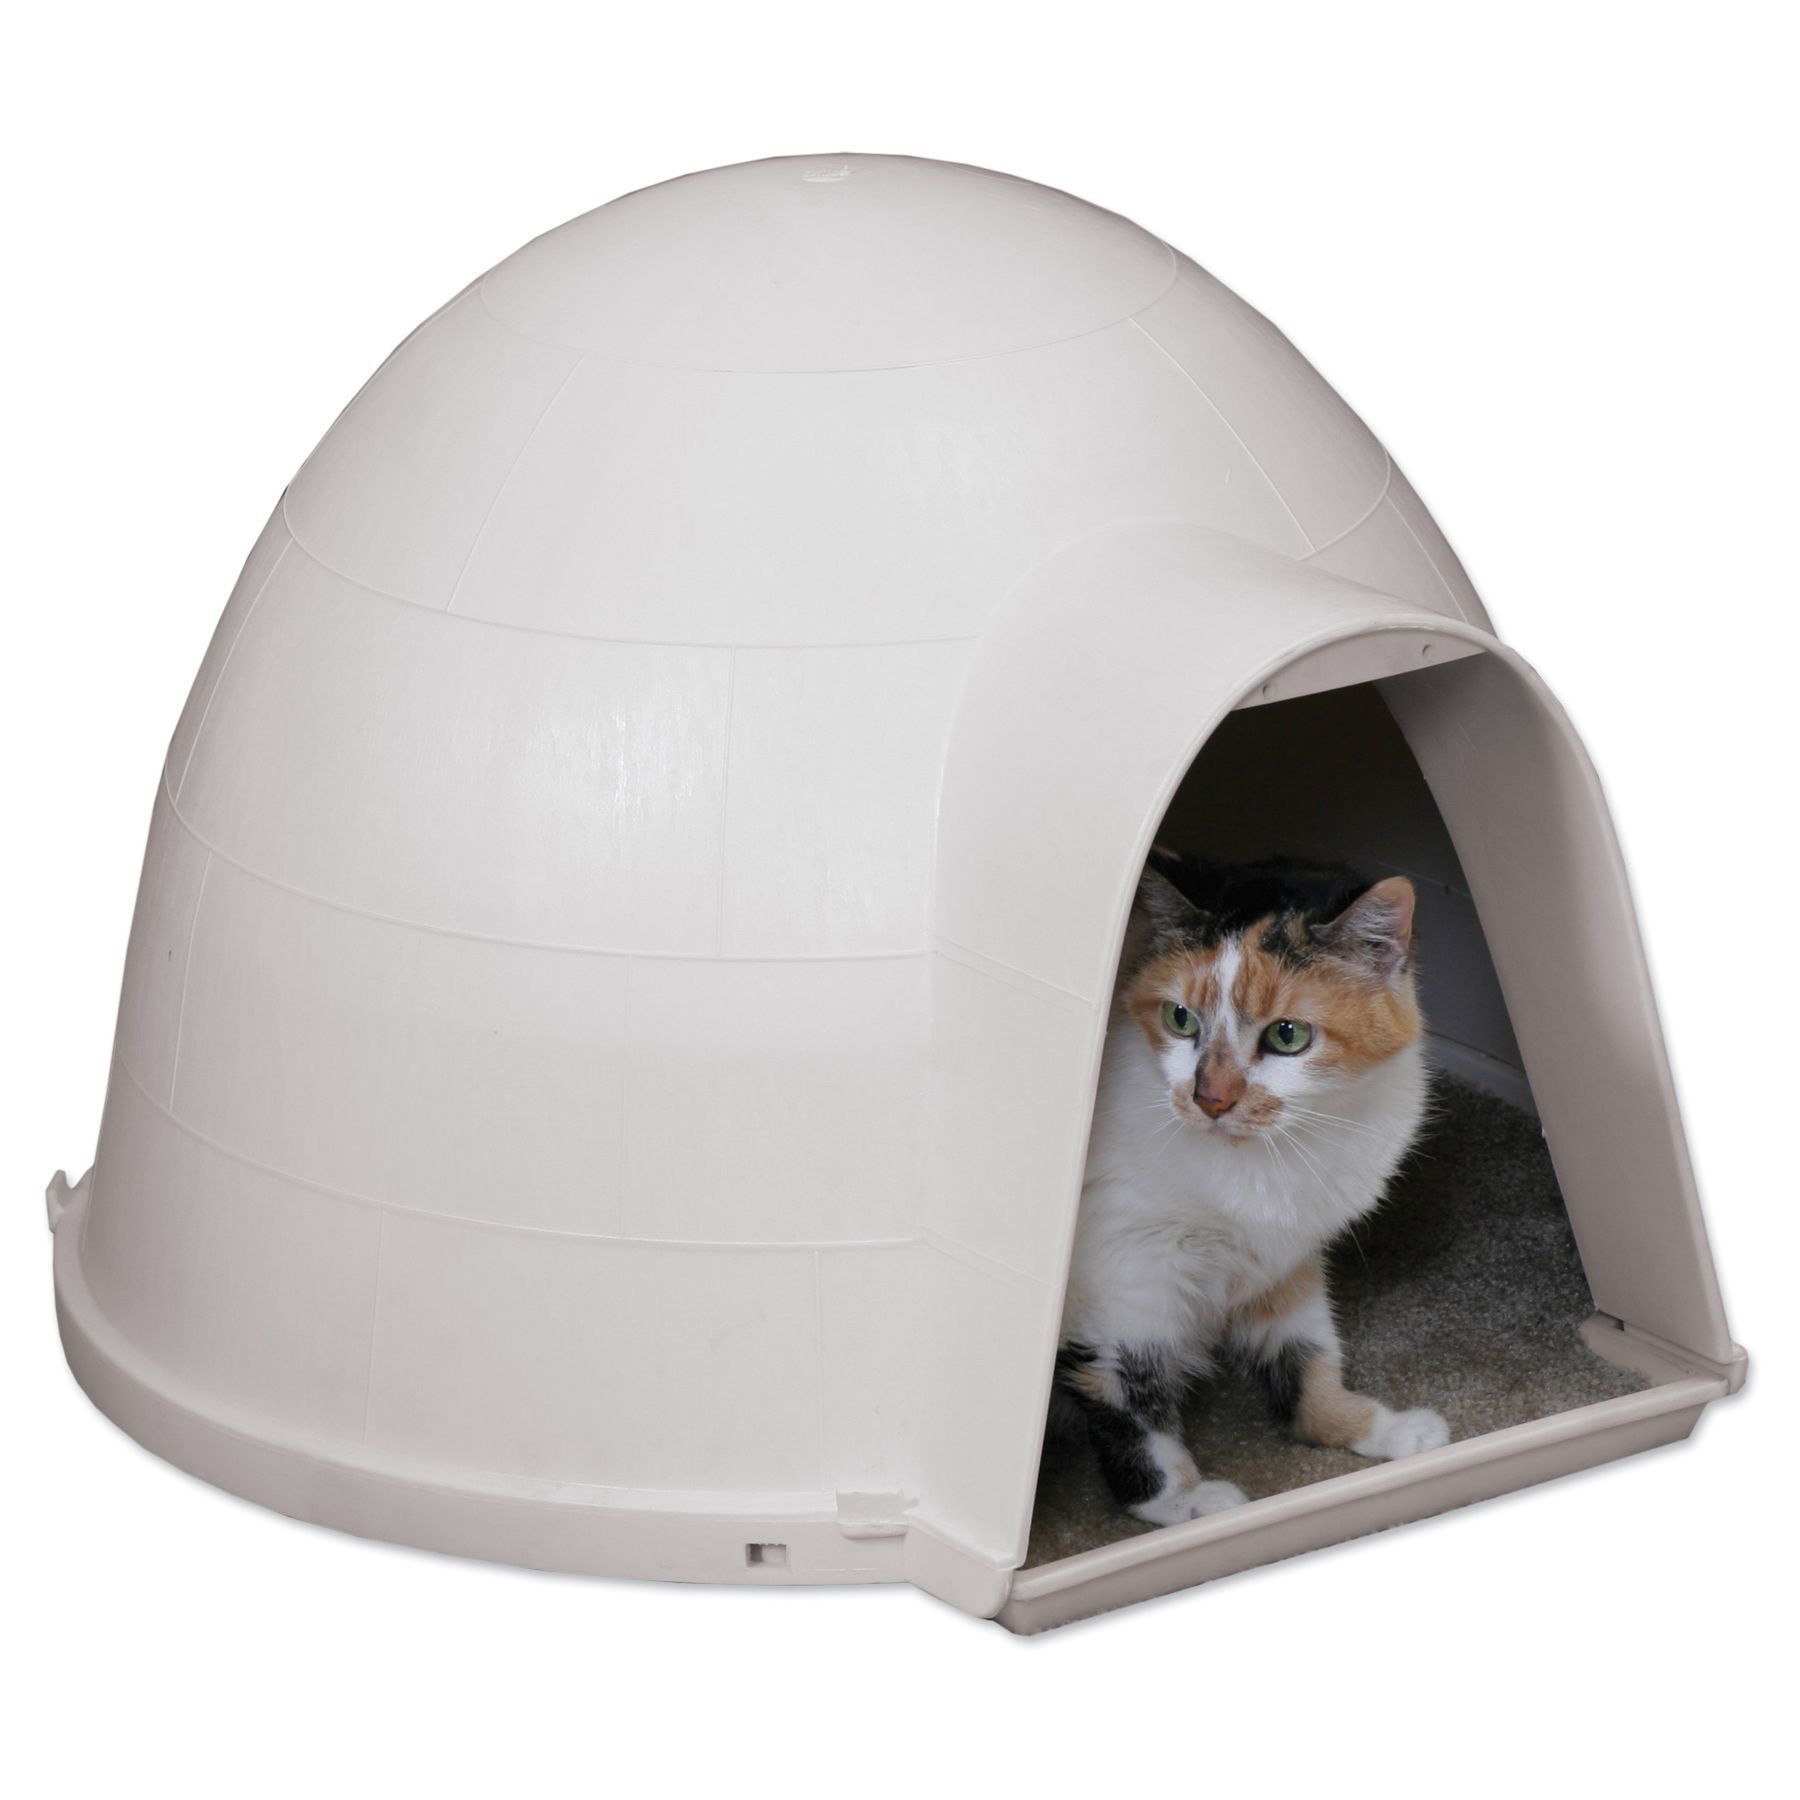 This Unique Igloo Shaped Cat House Is A Great Shelter For Outdoor